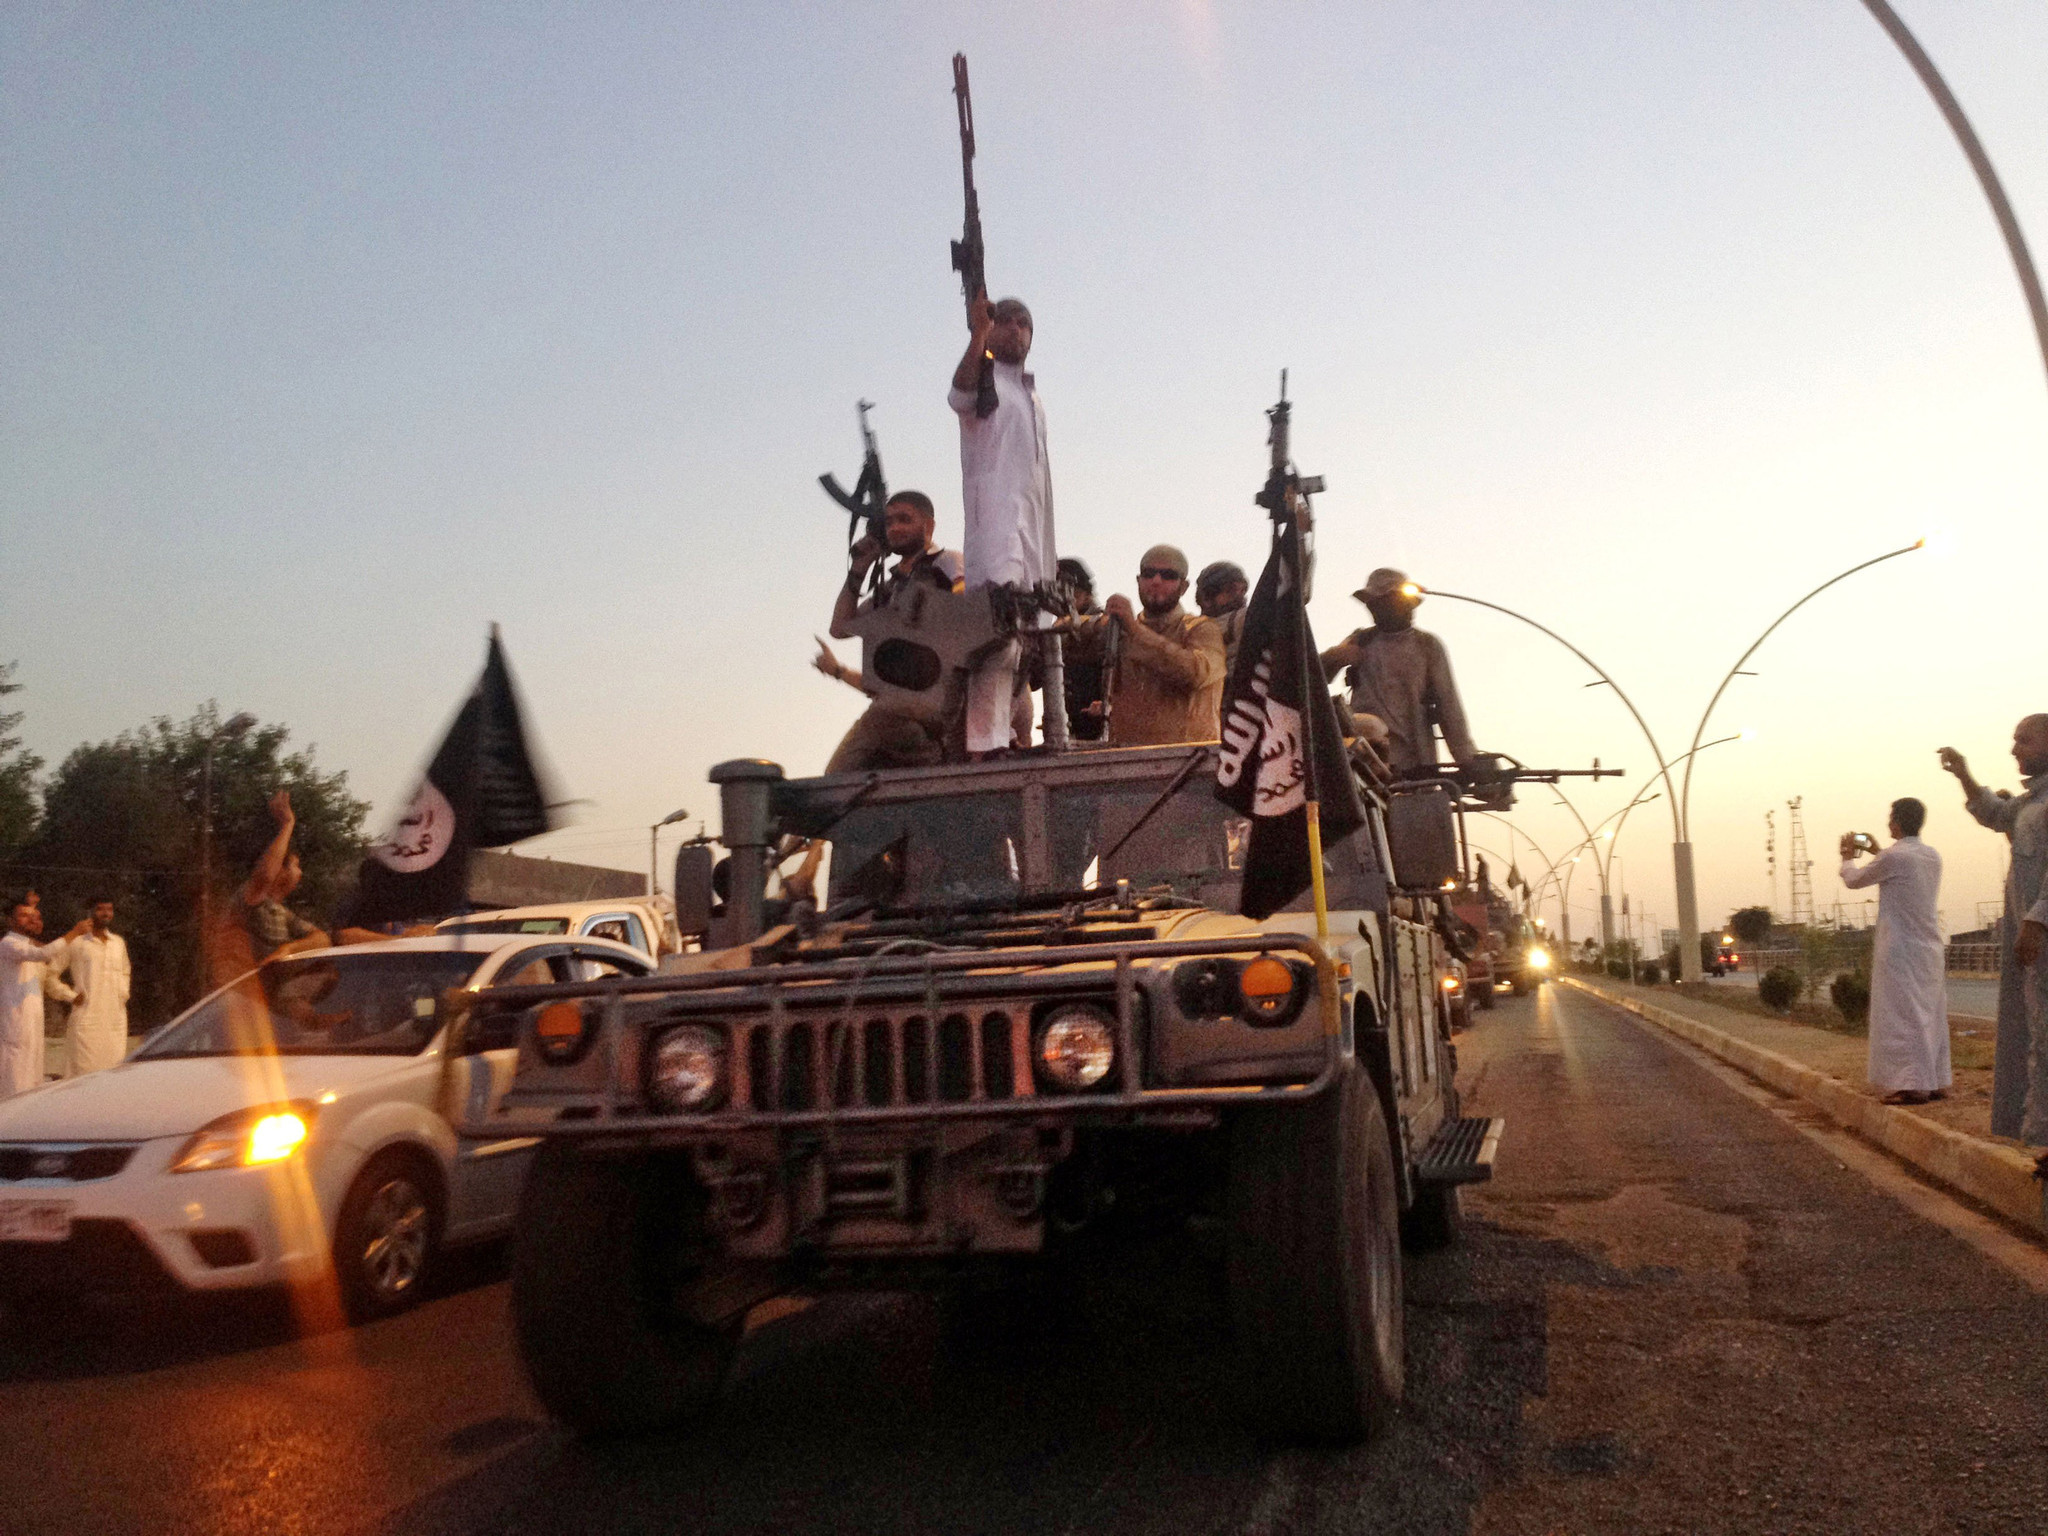 U.S. investigating reports that Islamic State used chemical weapons